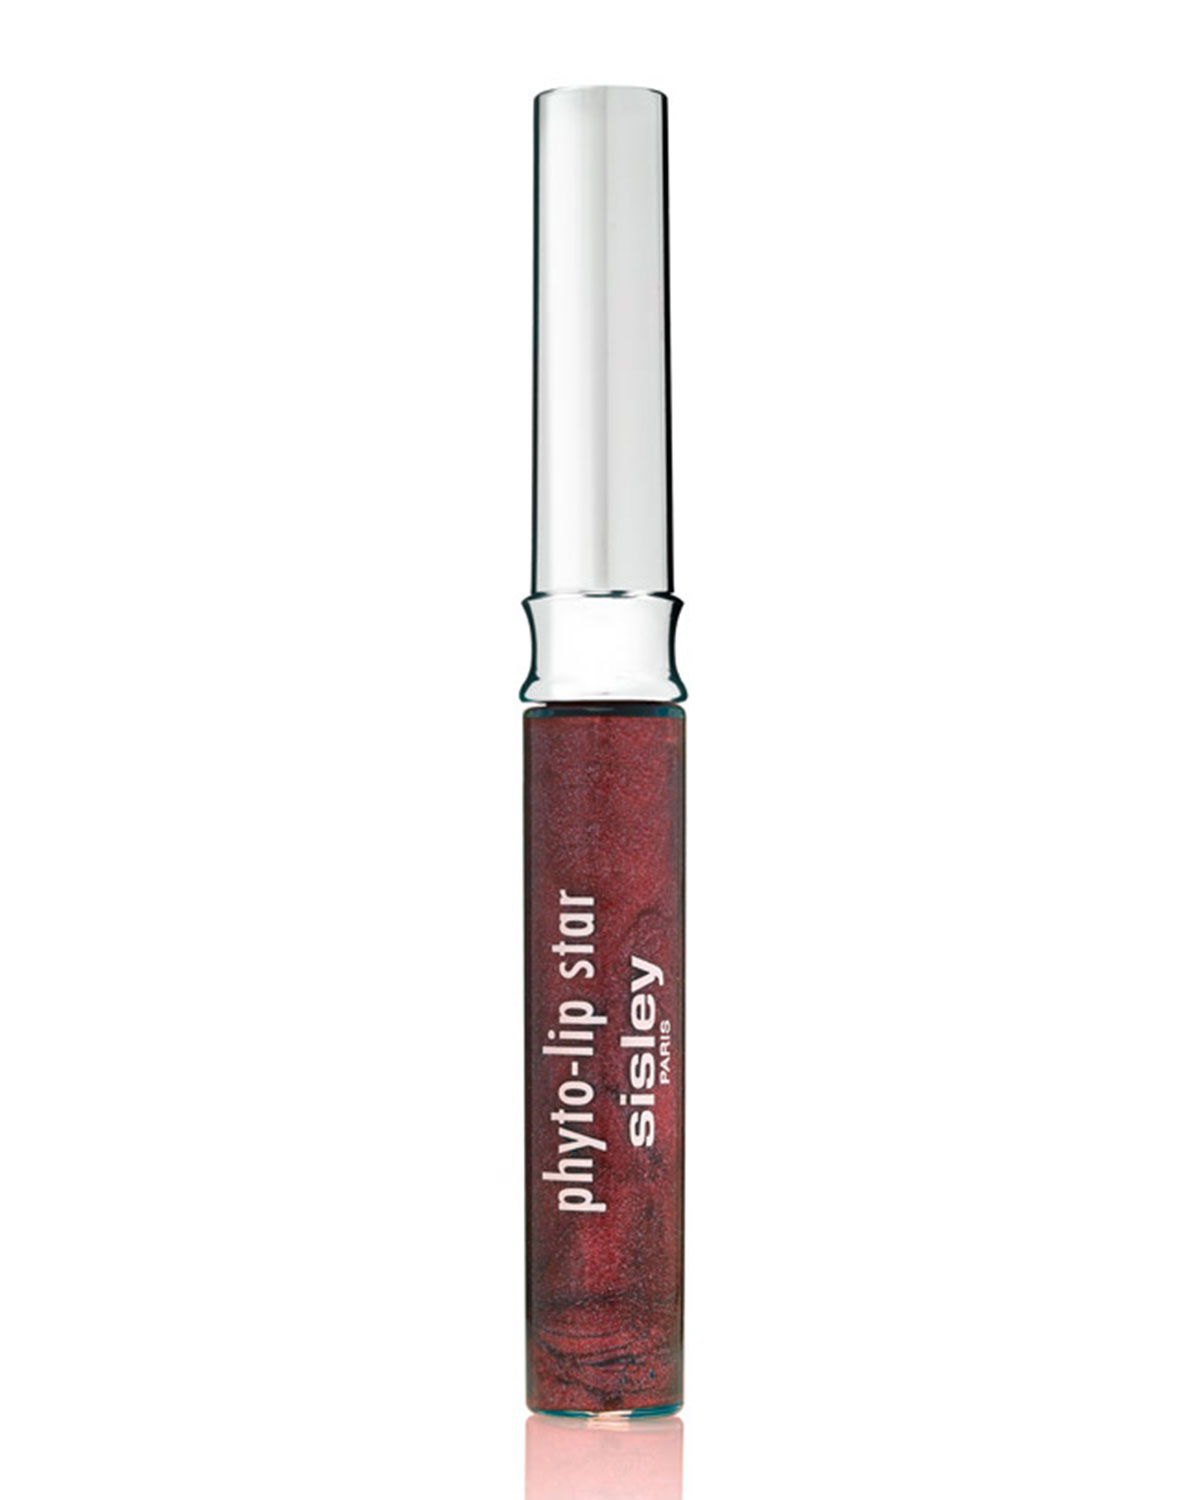 Sisley Phyto-Lip Star Lip Color - Shiny Ruby